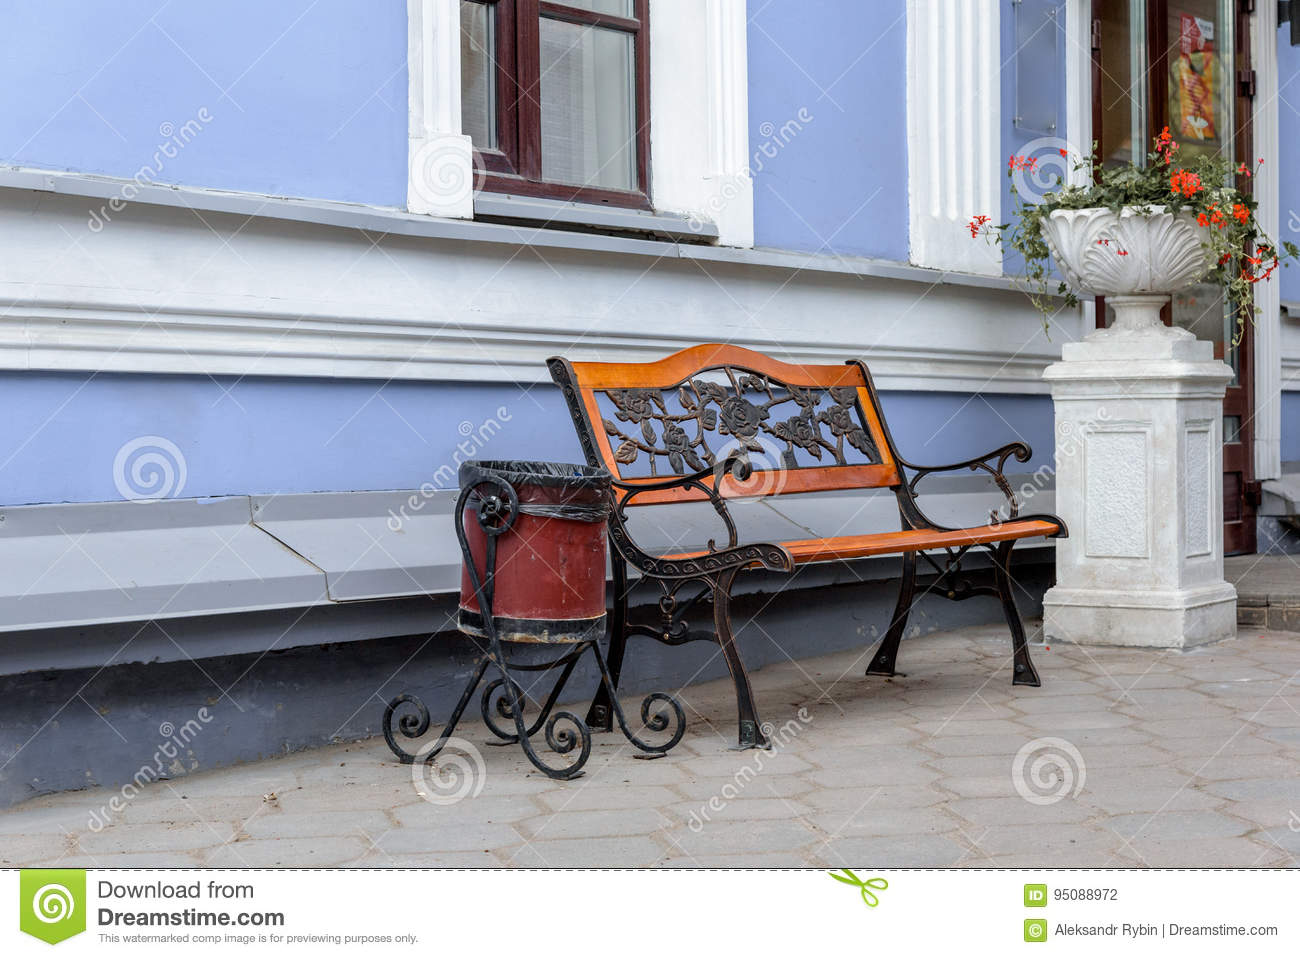 Groovy An Empty Wrought Iron Bench With Wooden Panels And Trash Can Ibusinesslaw Wood Chair Design Ideas Ibusinesslaworg